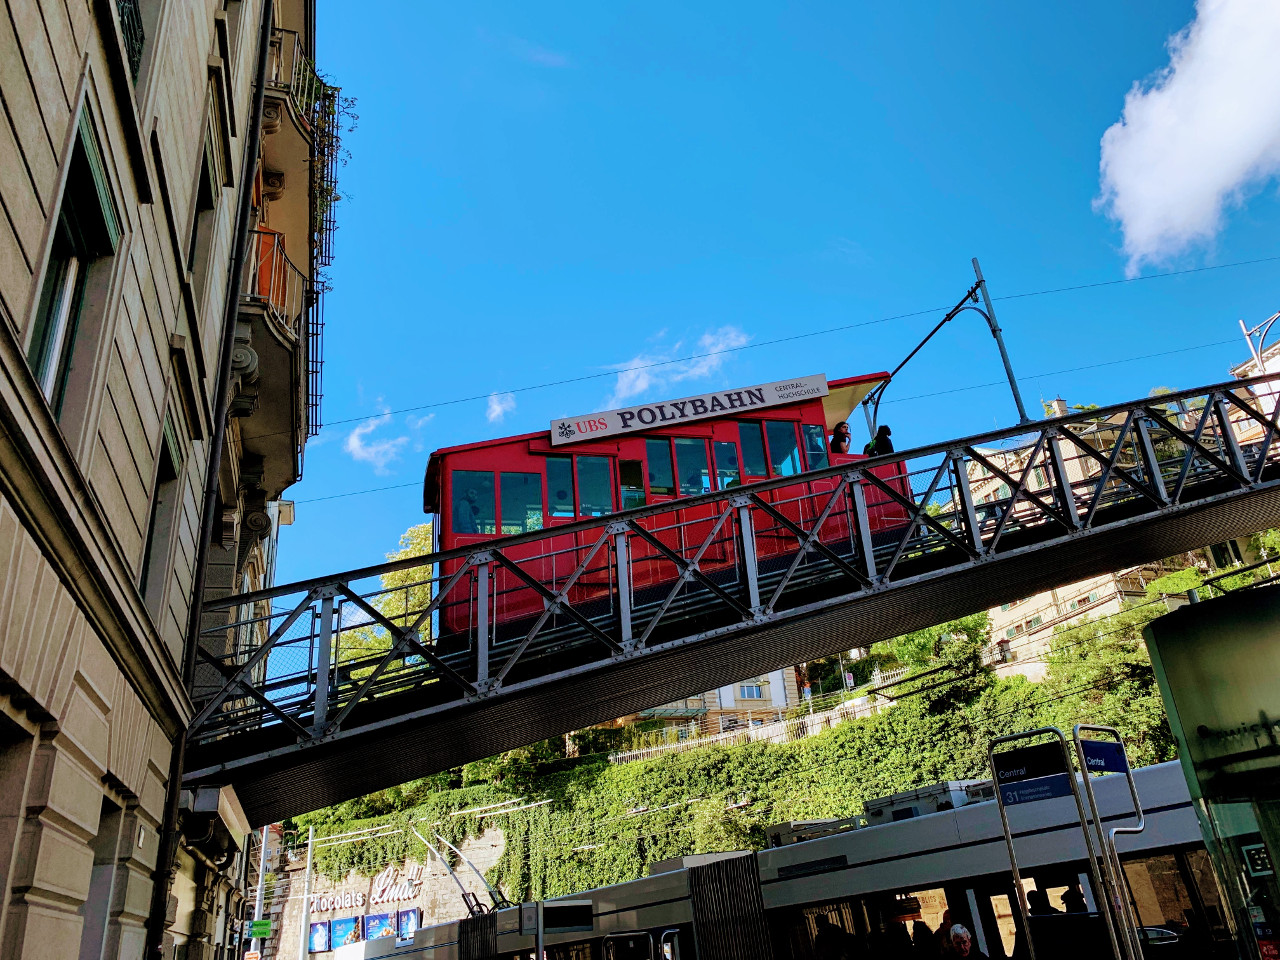 The Polybahn, Zurich. Discover the best off the beaten path things to do in and near Zurich (recommendations from a local).